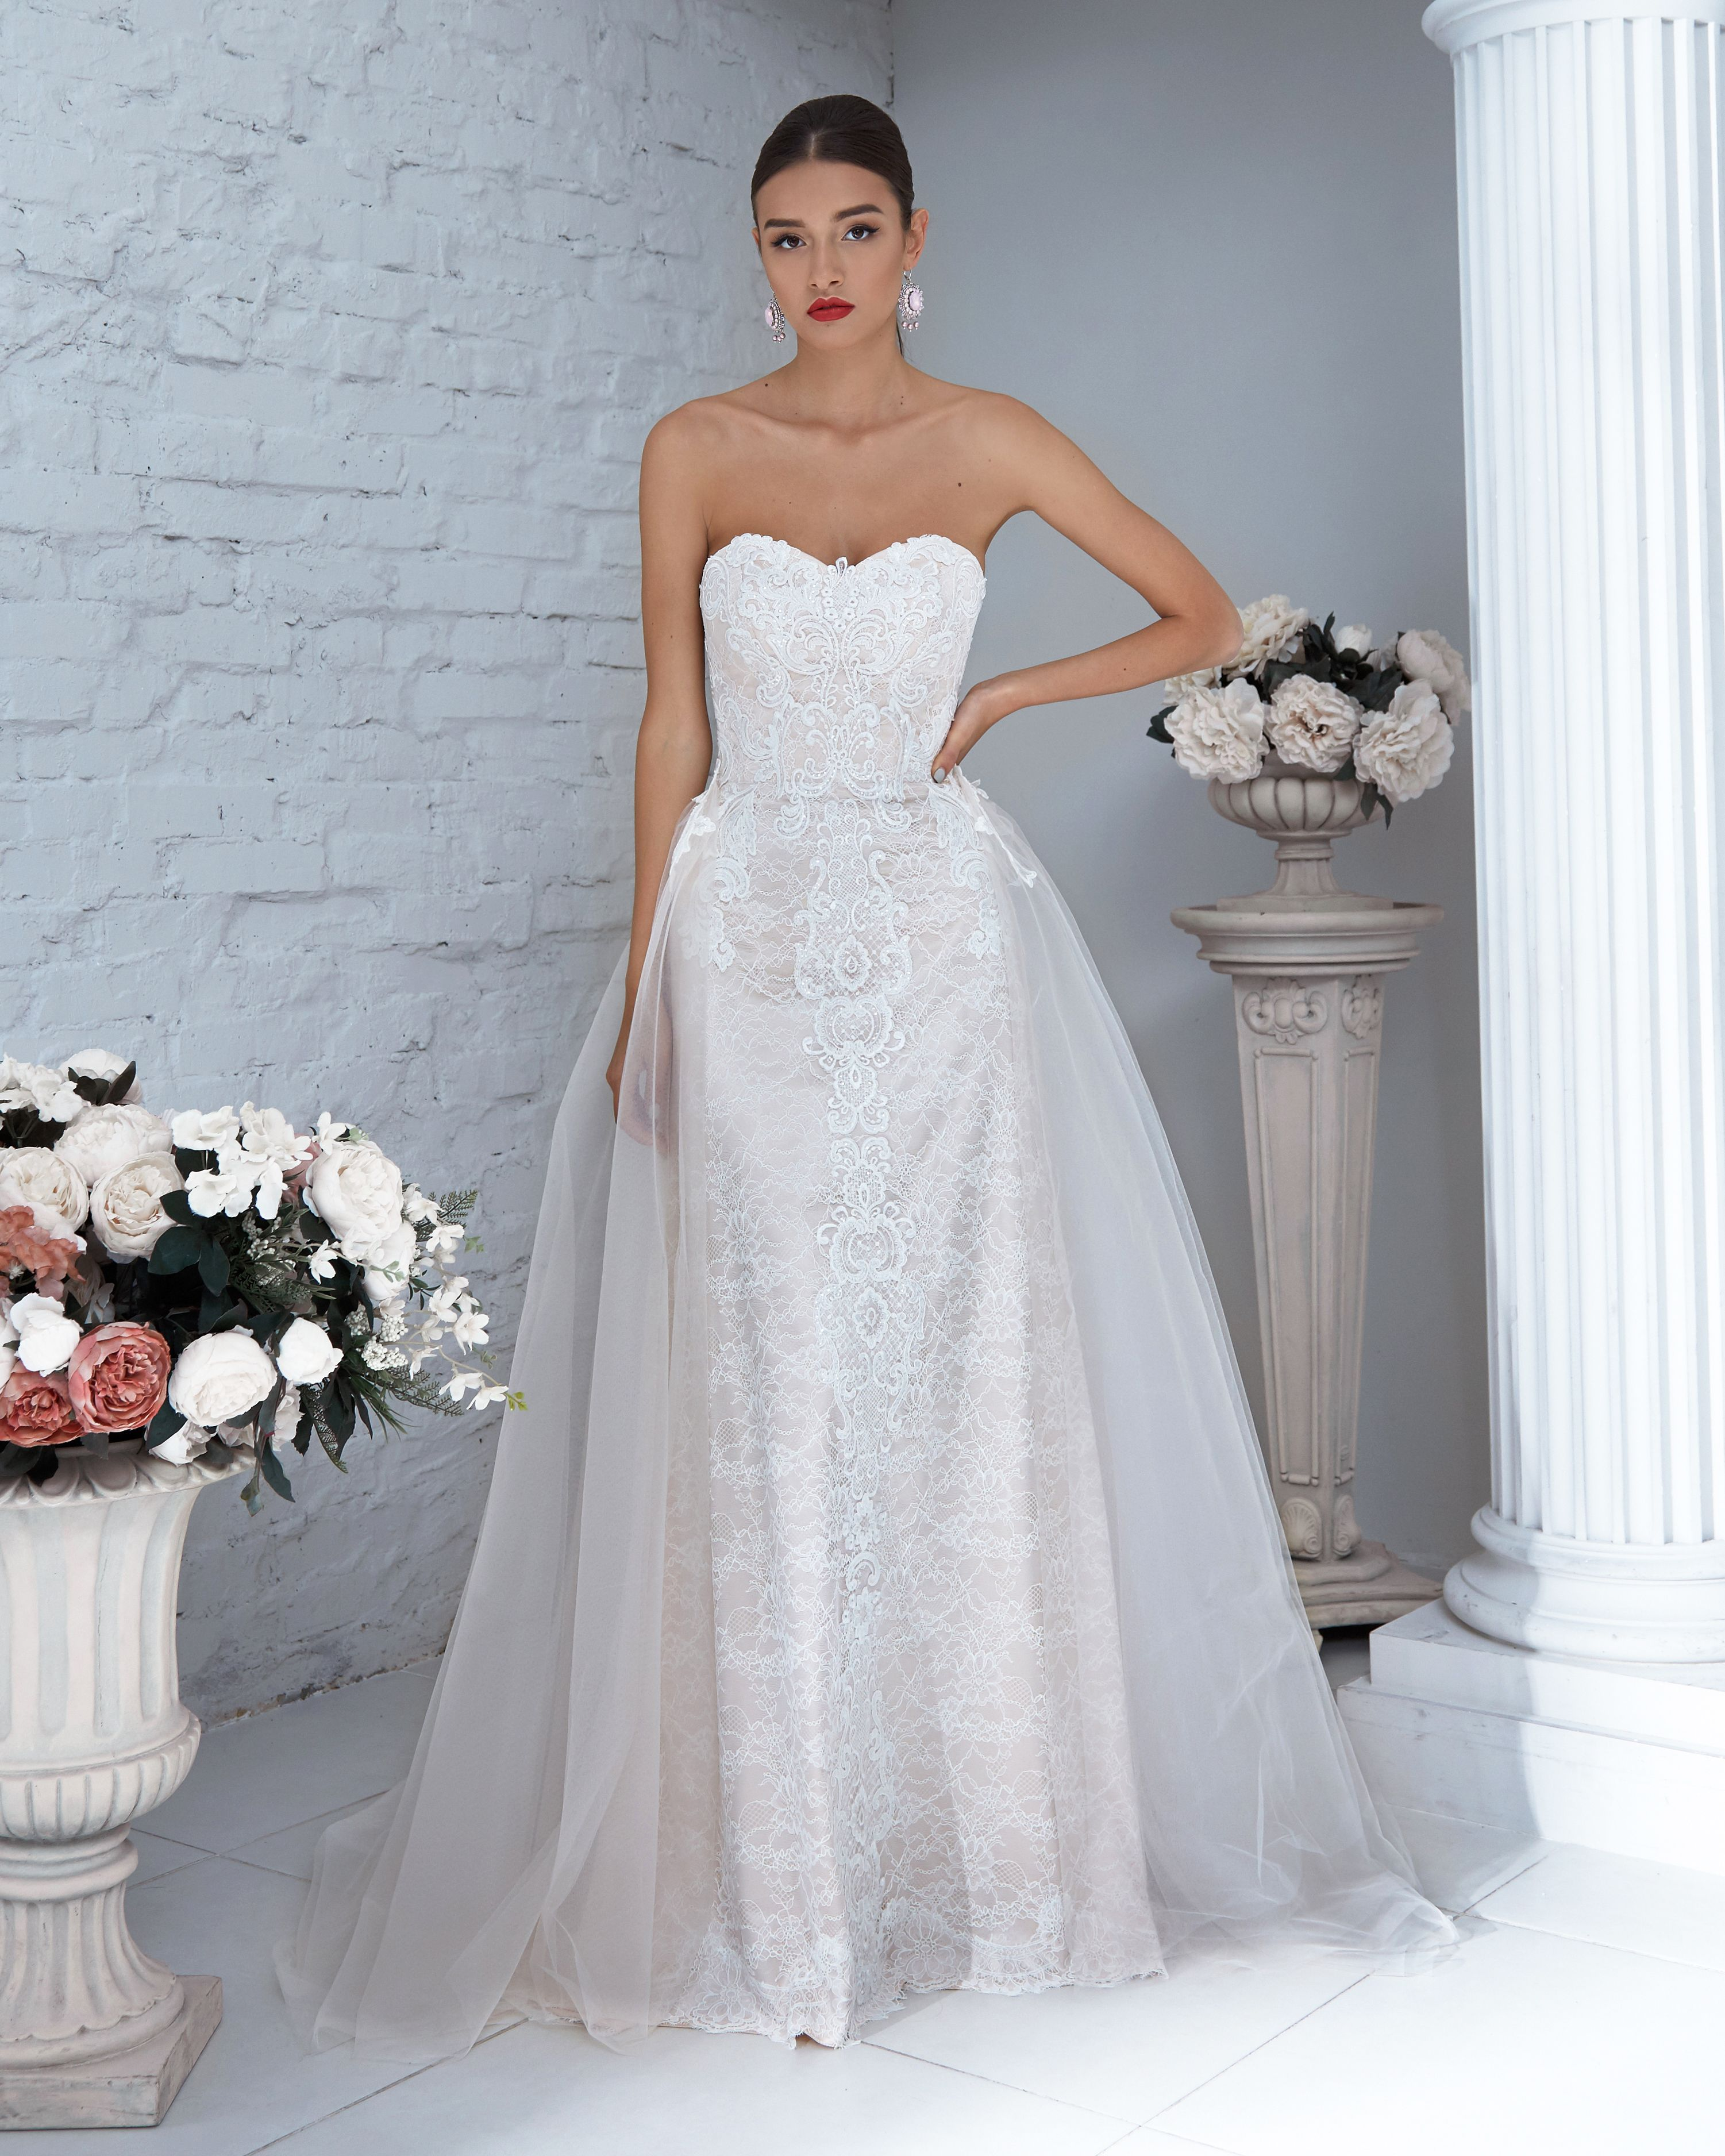 Lace gown with detachable train Wedding gowns, Wedding